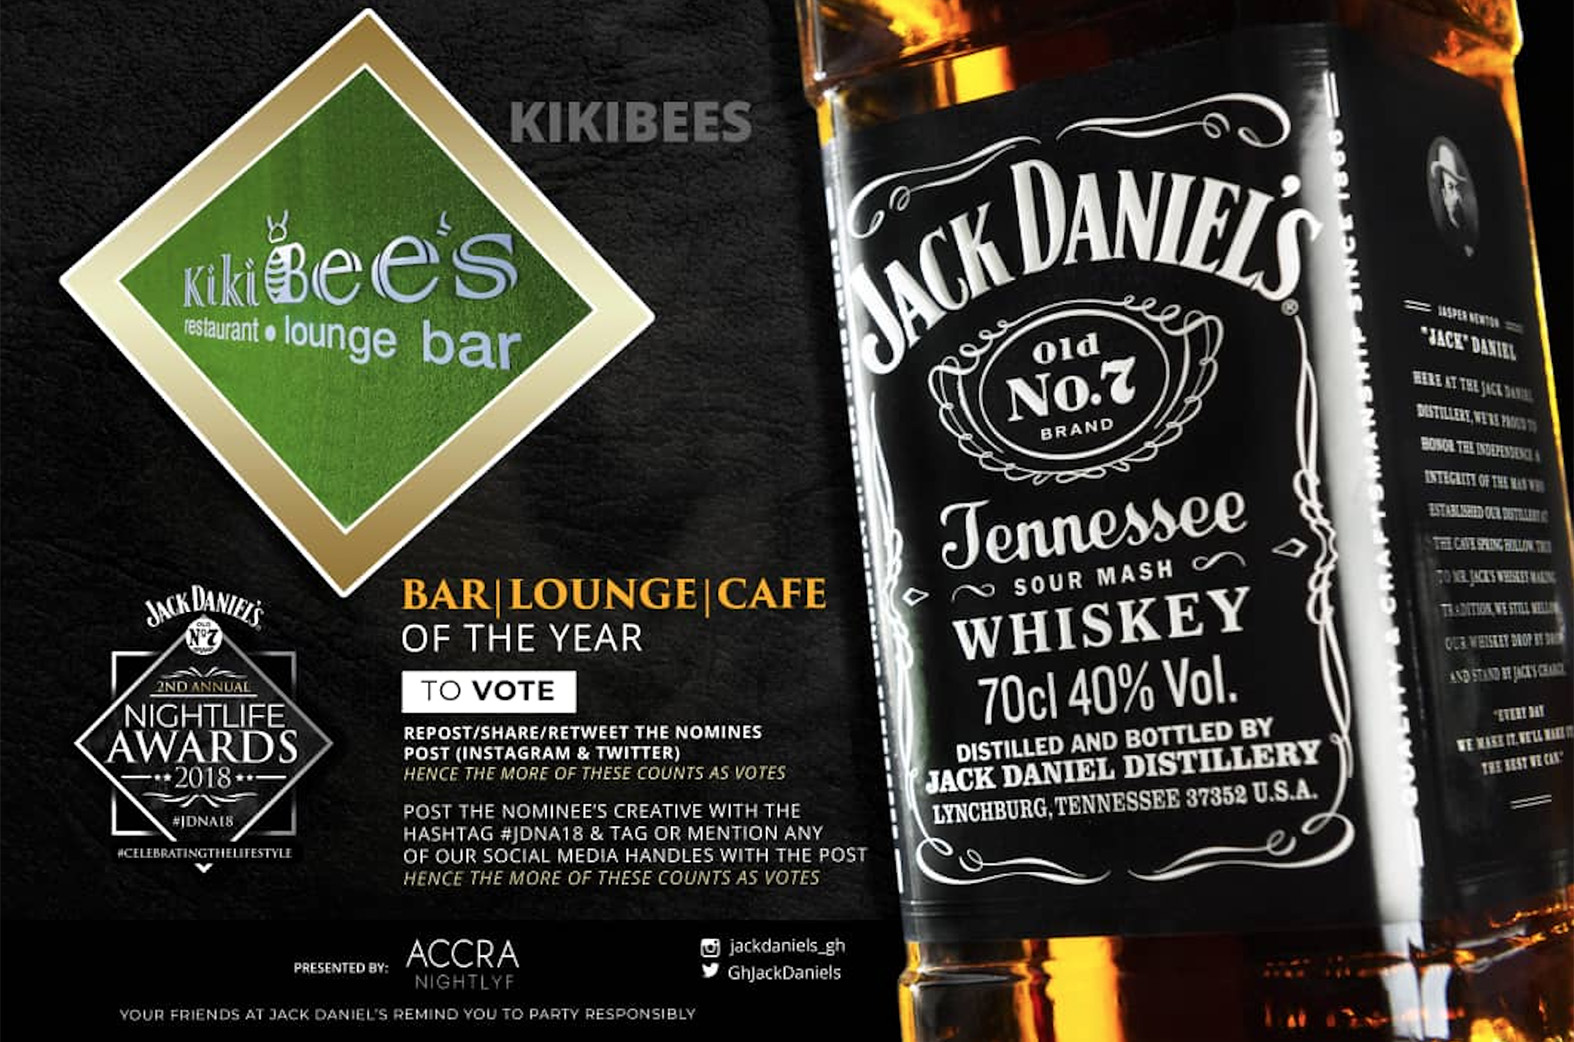 Kikibees Karaoke gets Jack Daniel's Night Life Awards nominations